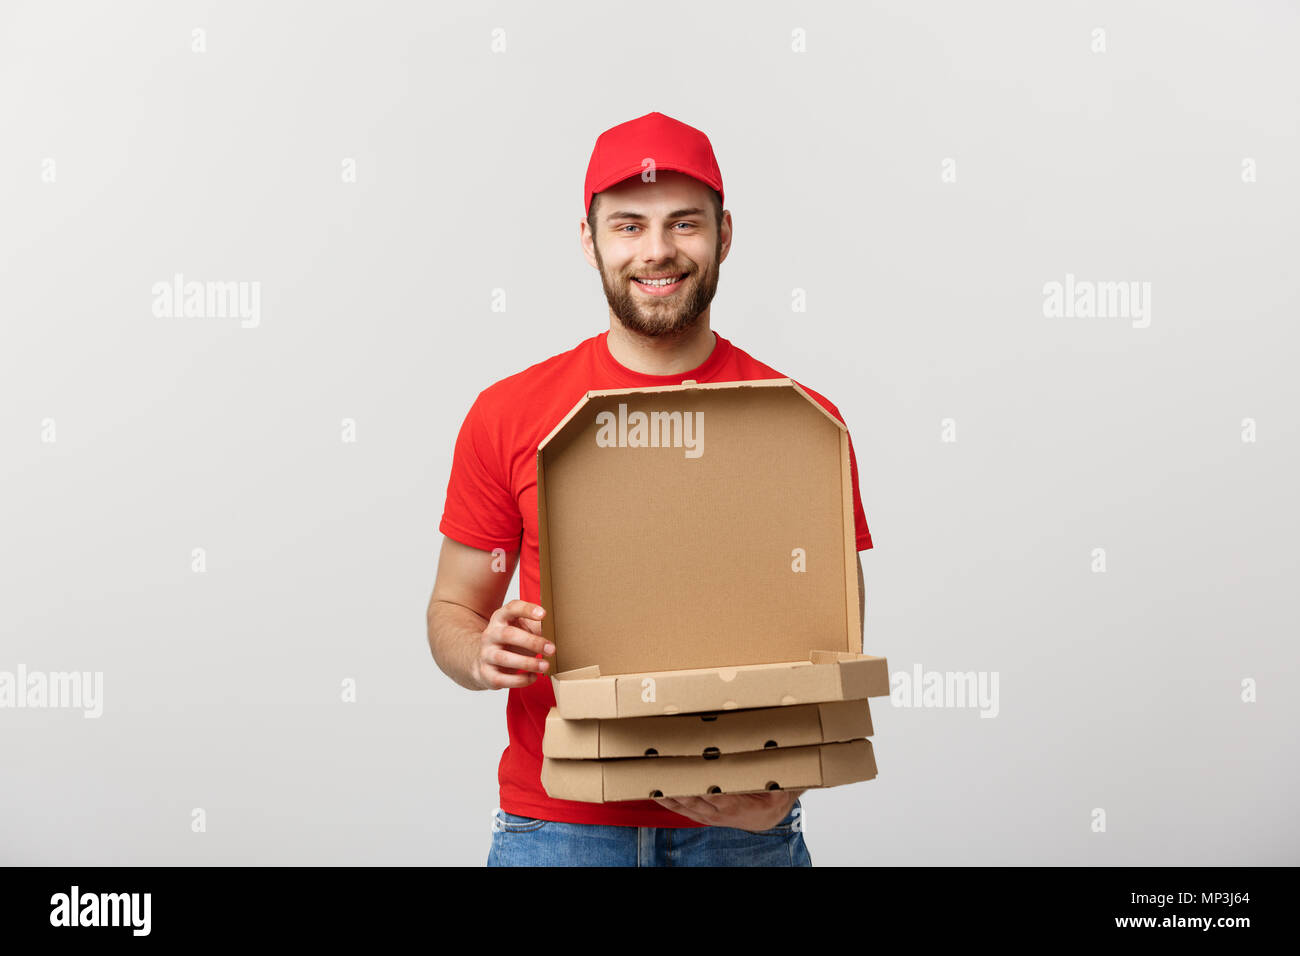 Pizza delivery concept. Young boy is delivering and showing pizza boxs in boxes. Isolated on white background - Stock Image